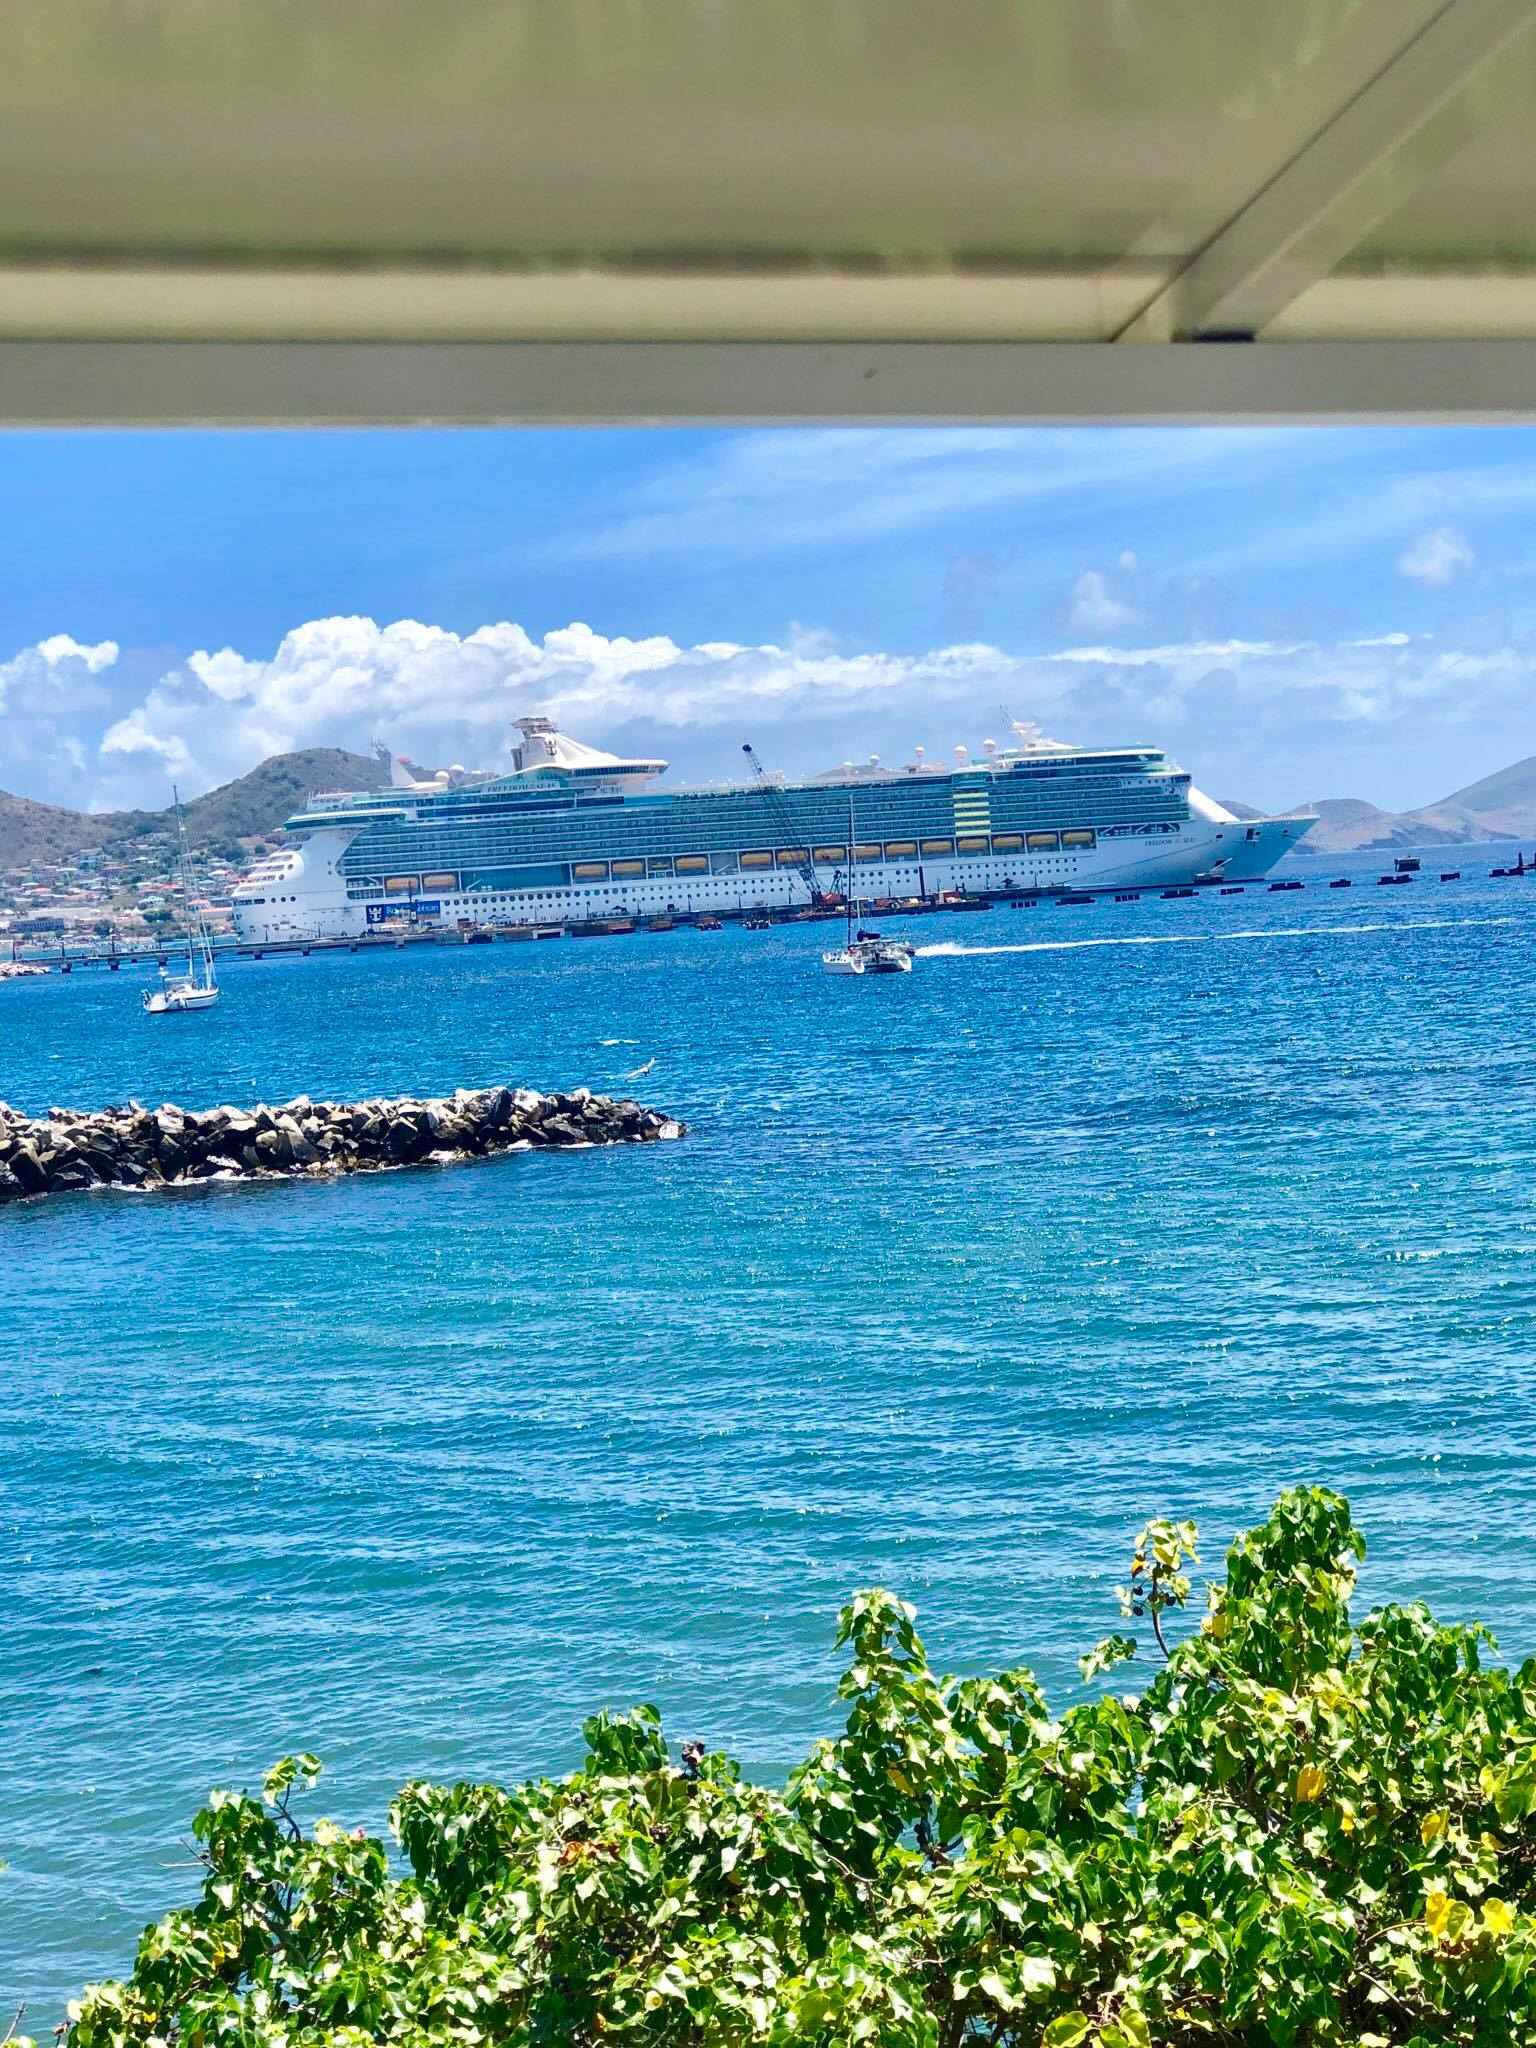 Kach Solo Travels in 2019 Hello from St Kitts23.jpg